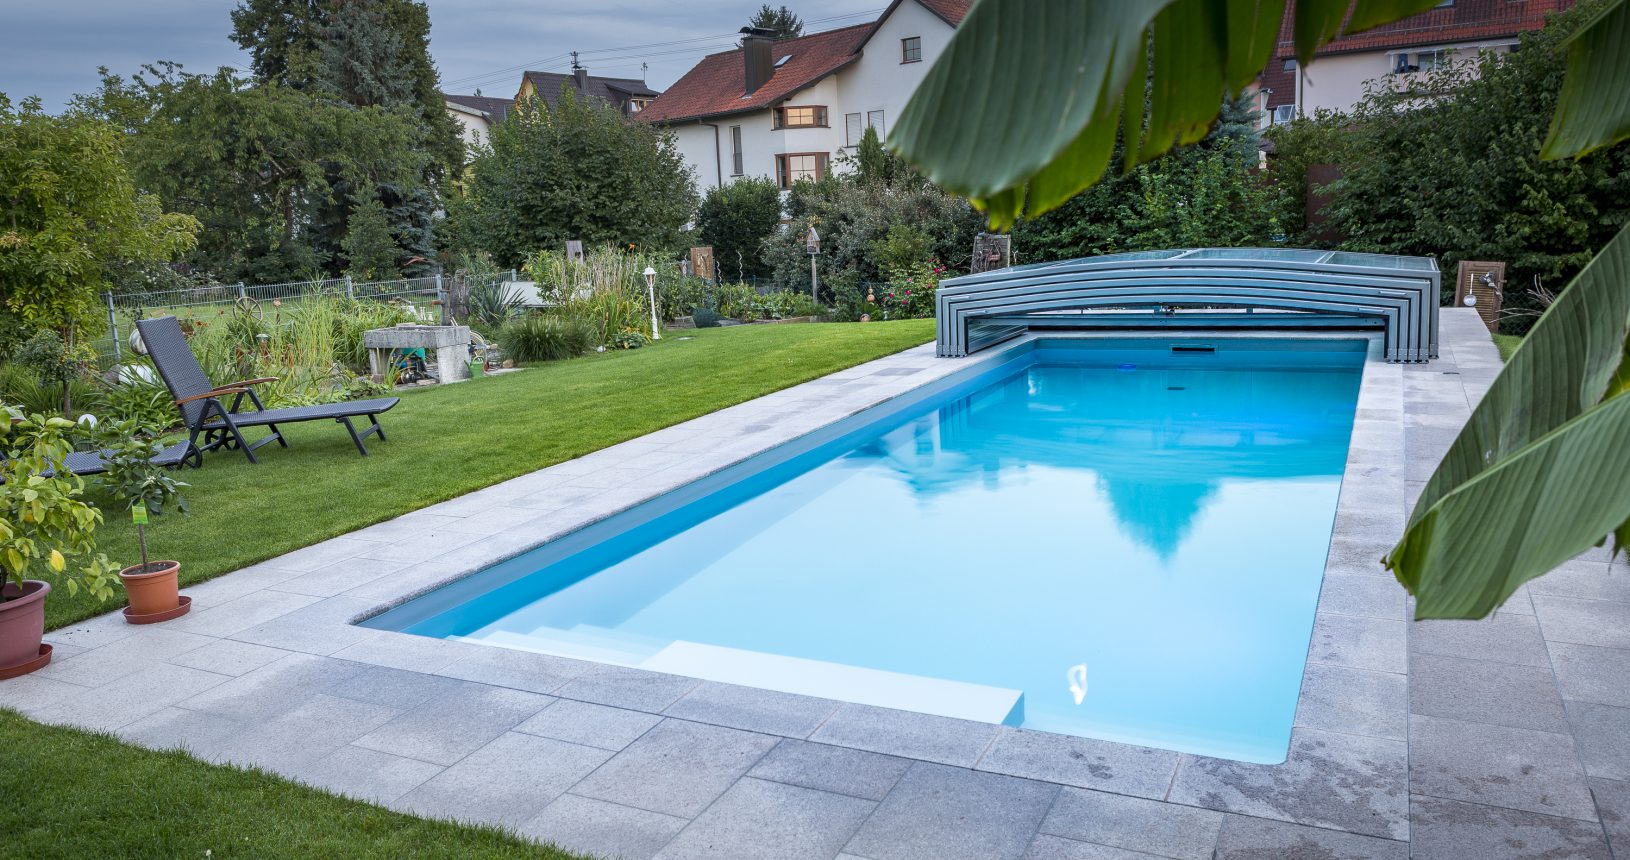 Poolzubehör Erfurt Herfurth Pool Co Topras Premium Partner In Appenweier Offenburg